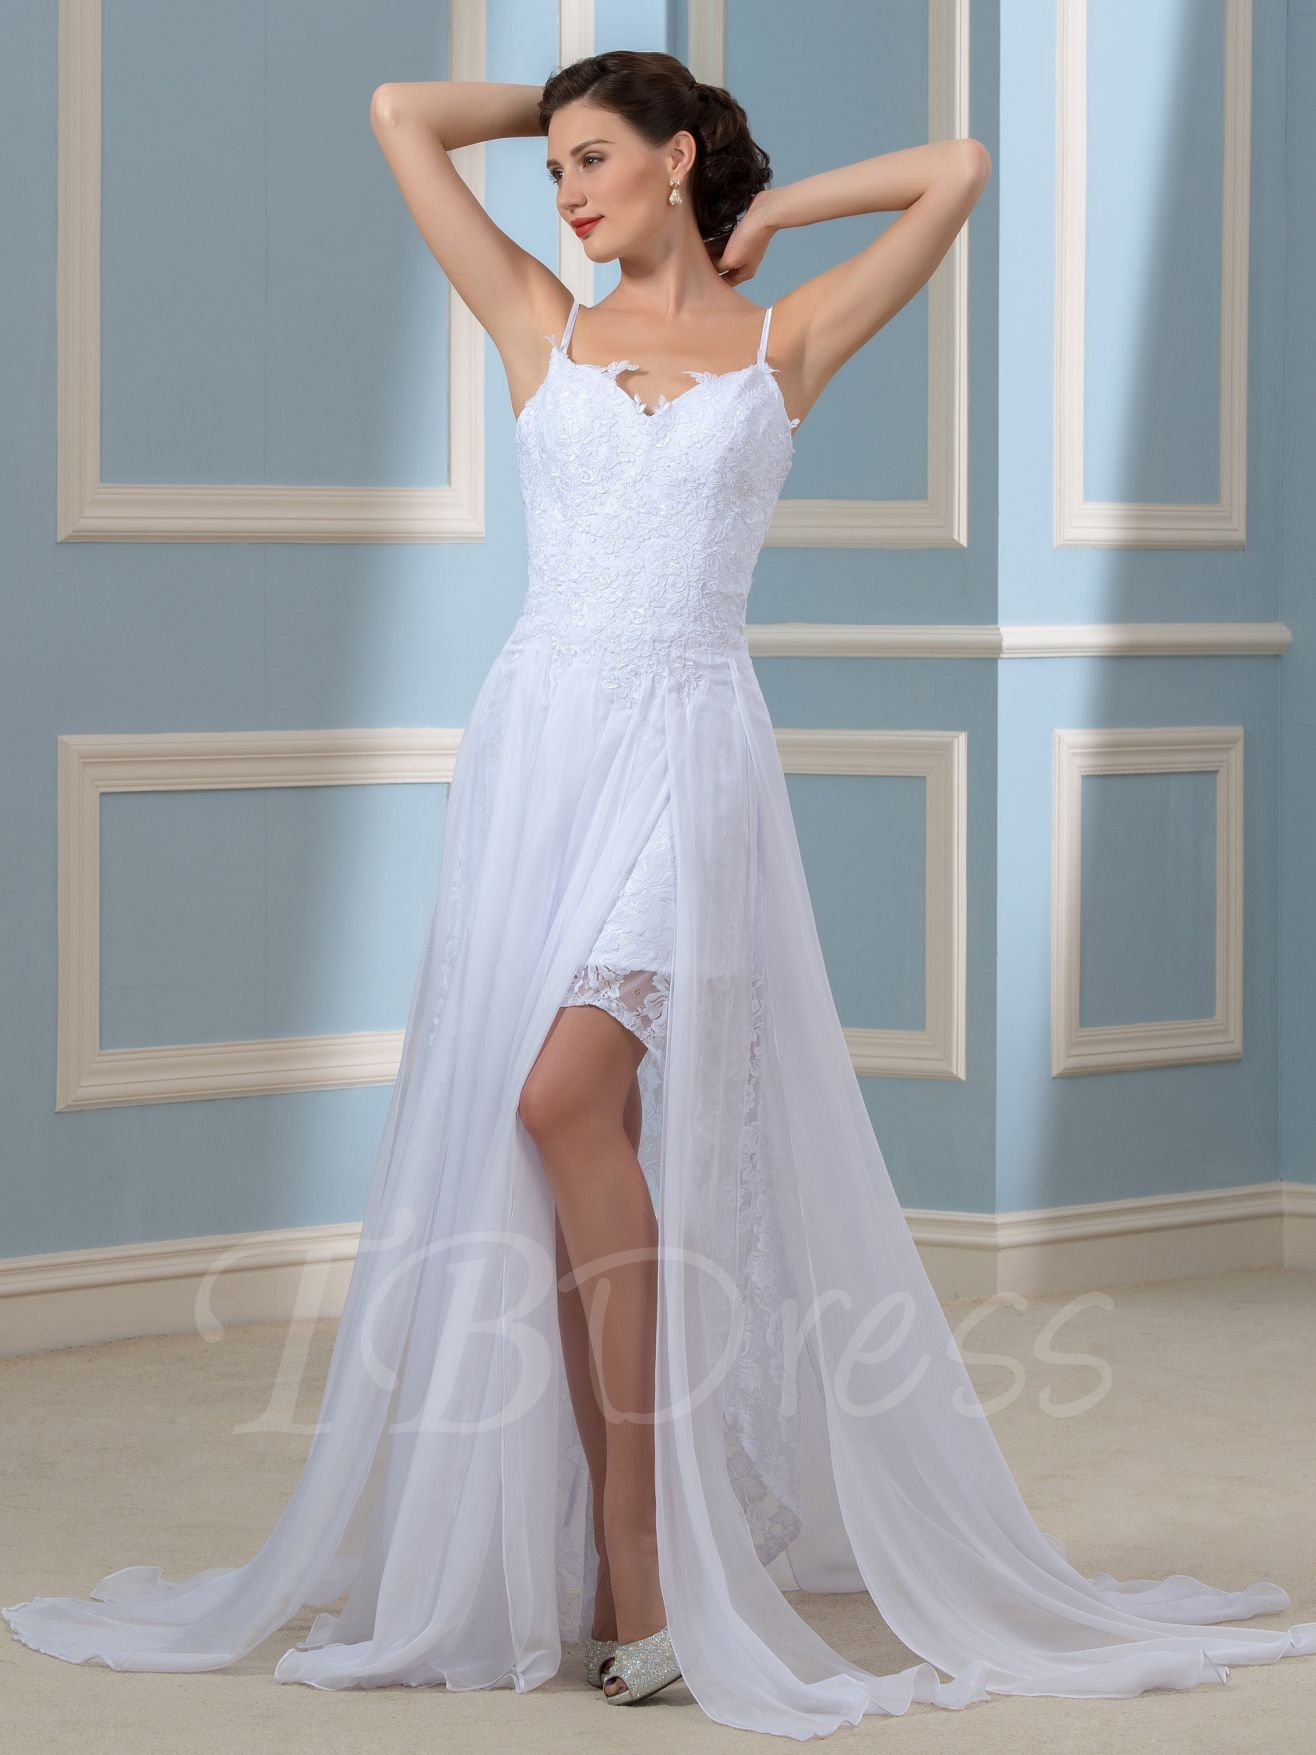 spaghetti strap beach wedding dress womenus dresses for